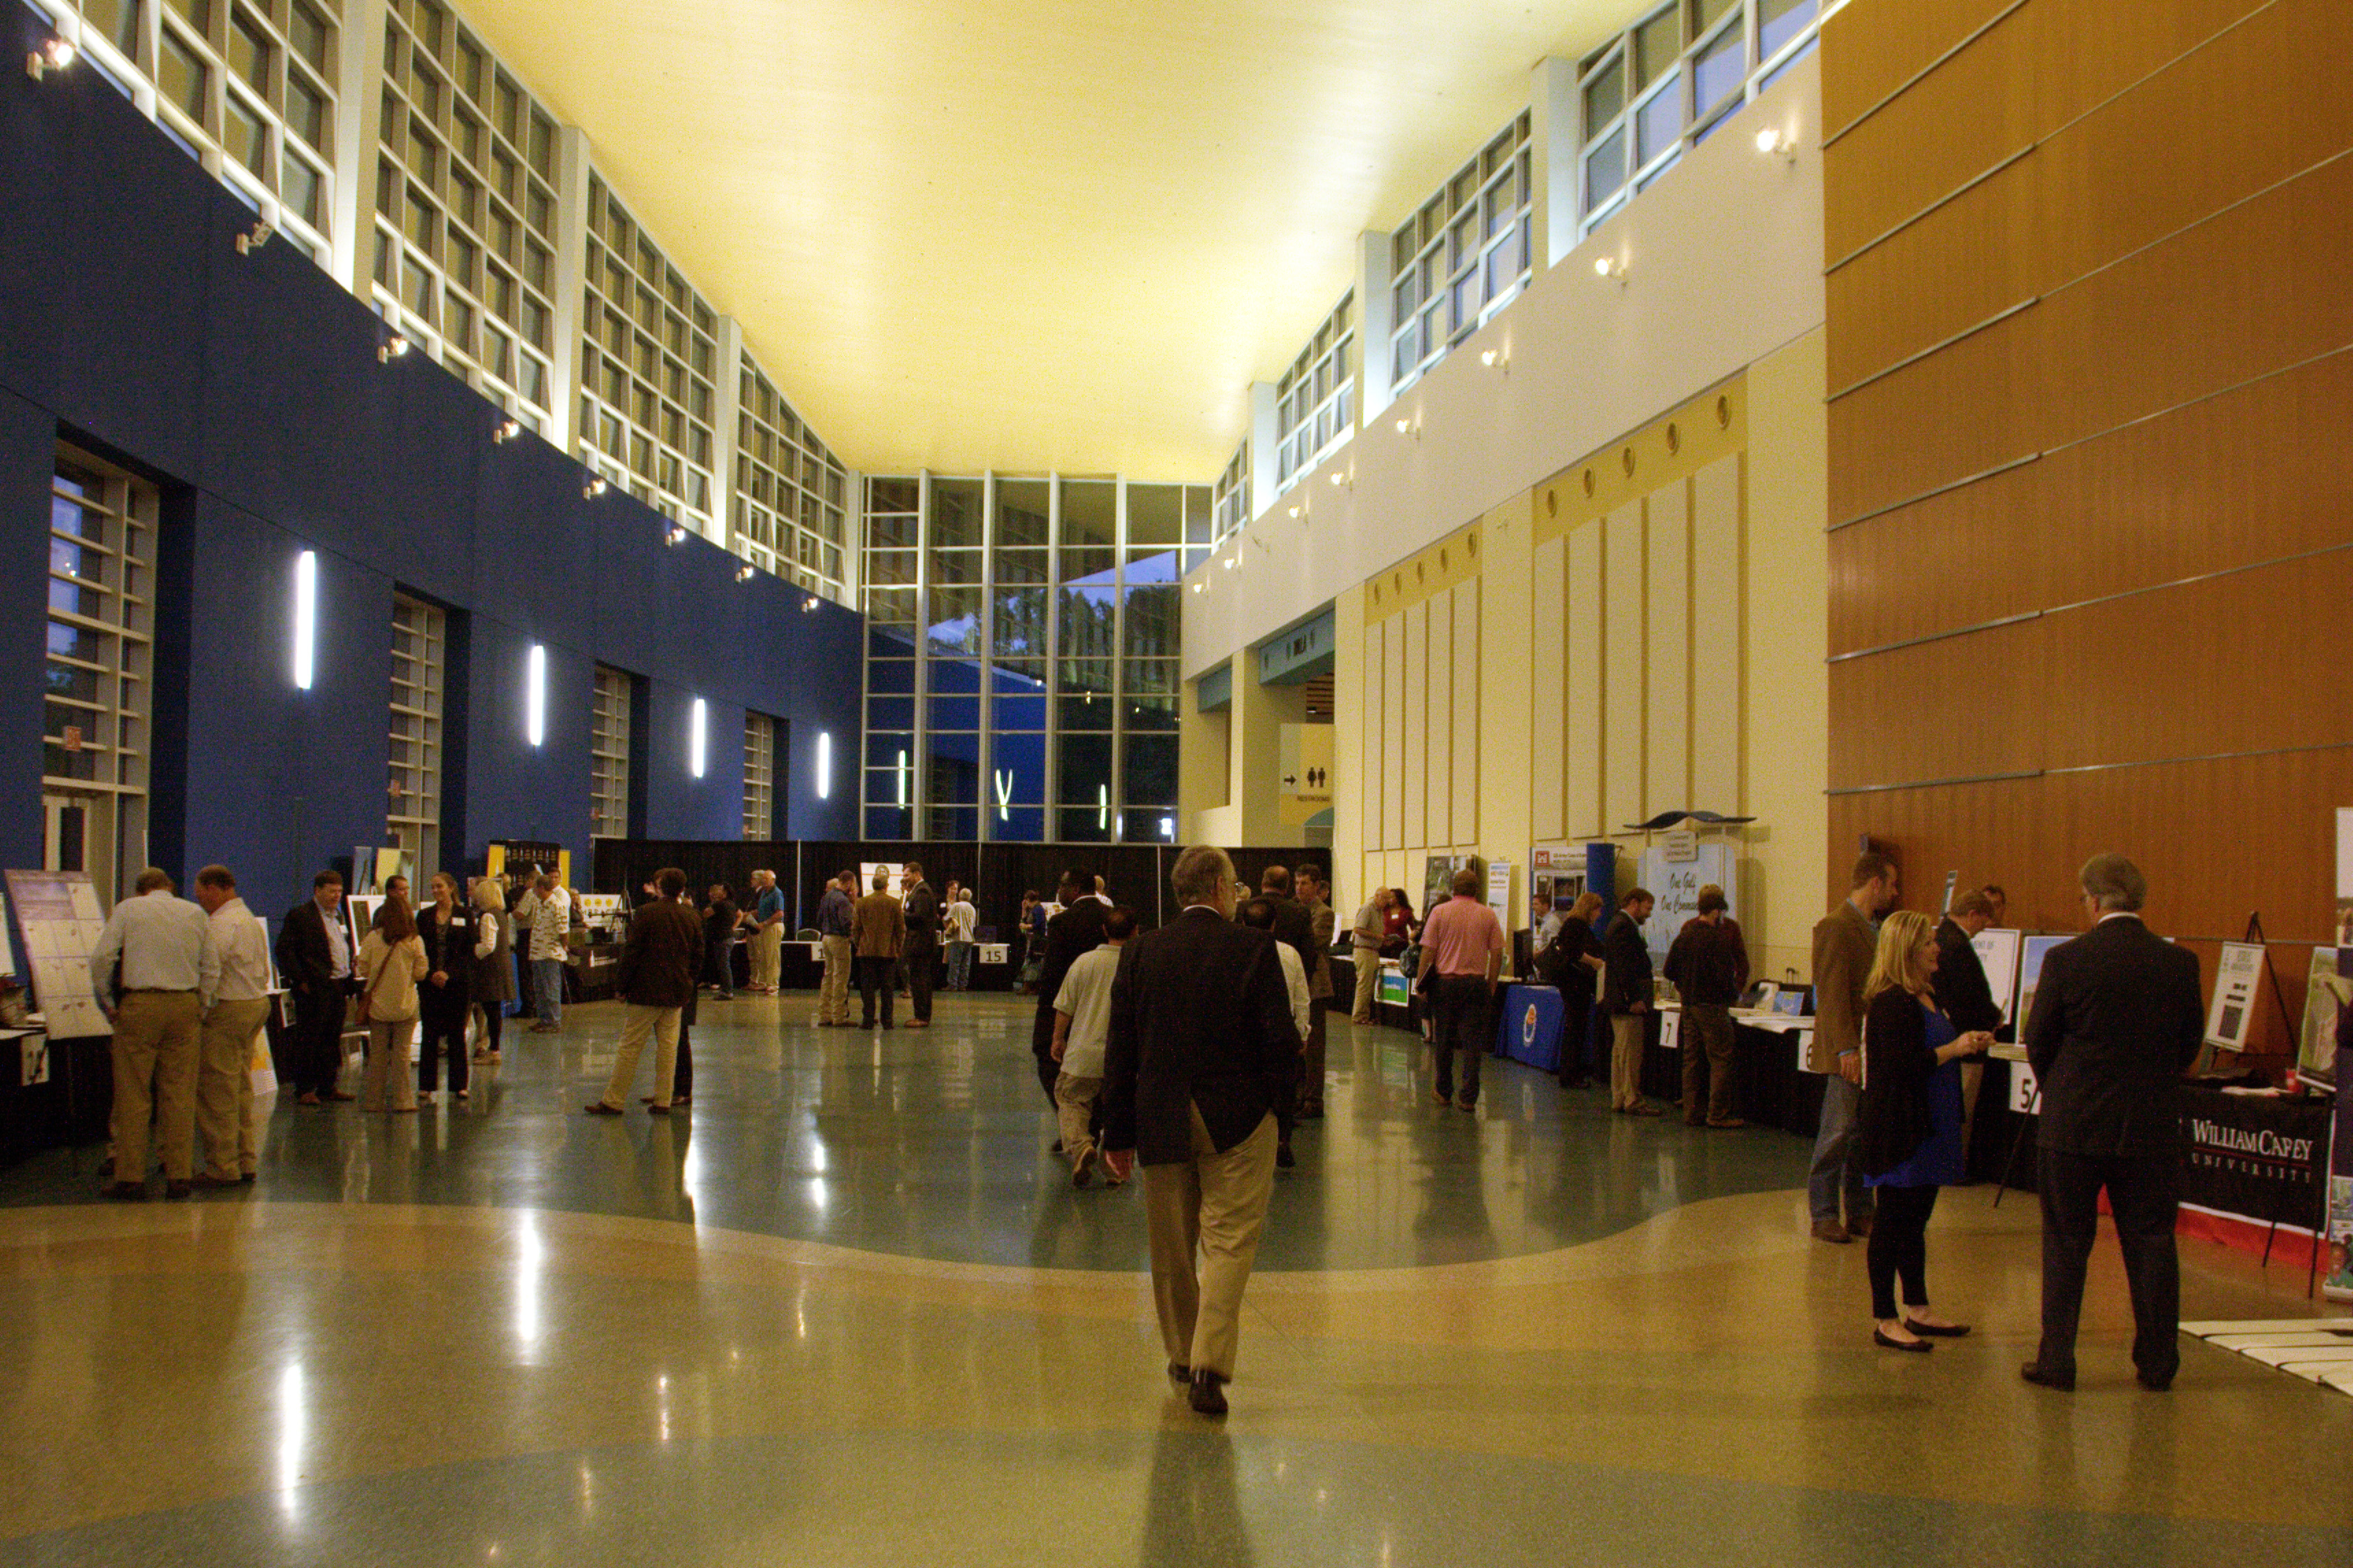 Exhibitors stand with other people at tables on both sides of a long hallway/atrium with high ceilings.